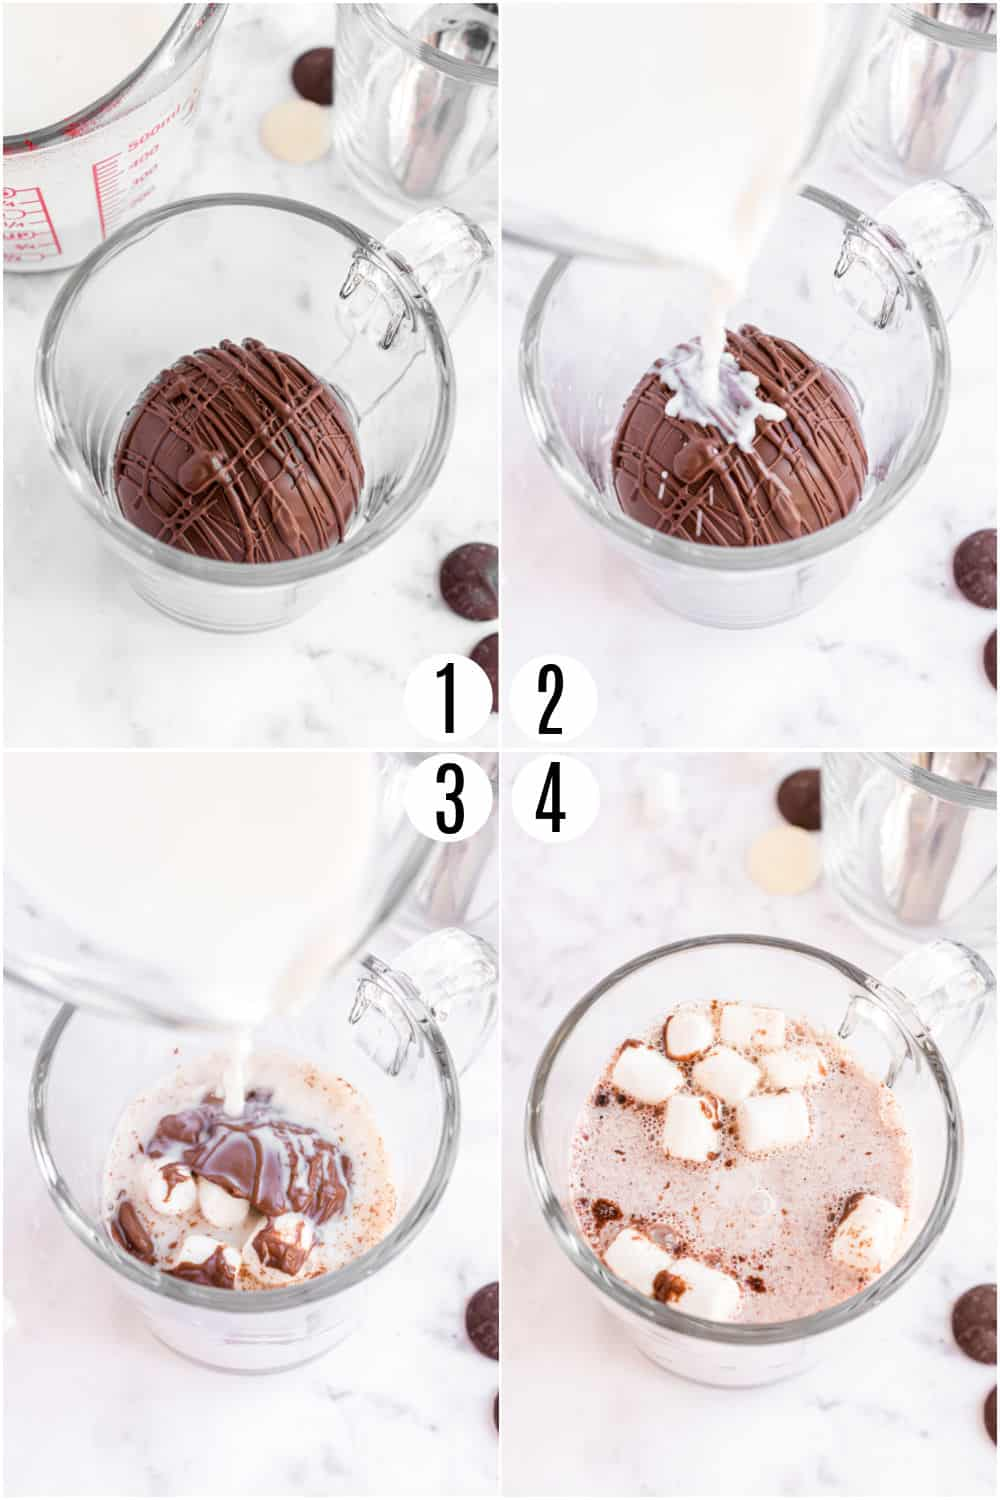 Step by step photos showing how to add warm milk to hot cocoa bombs.